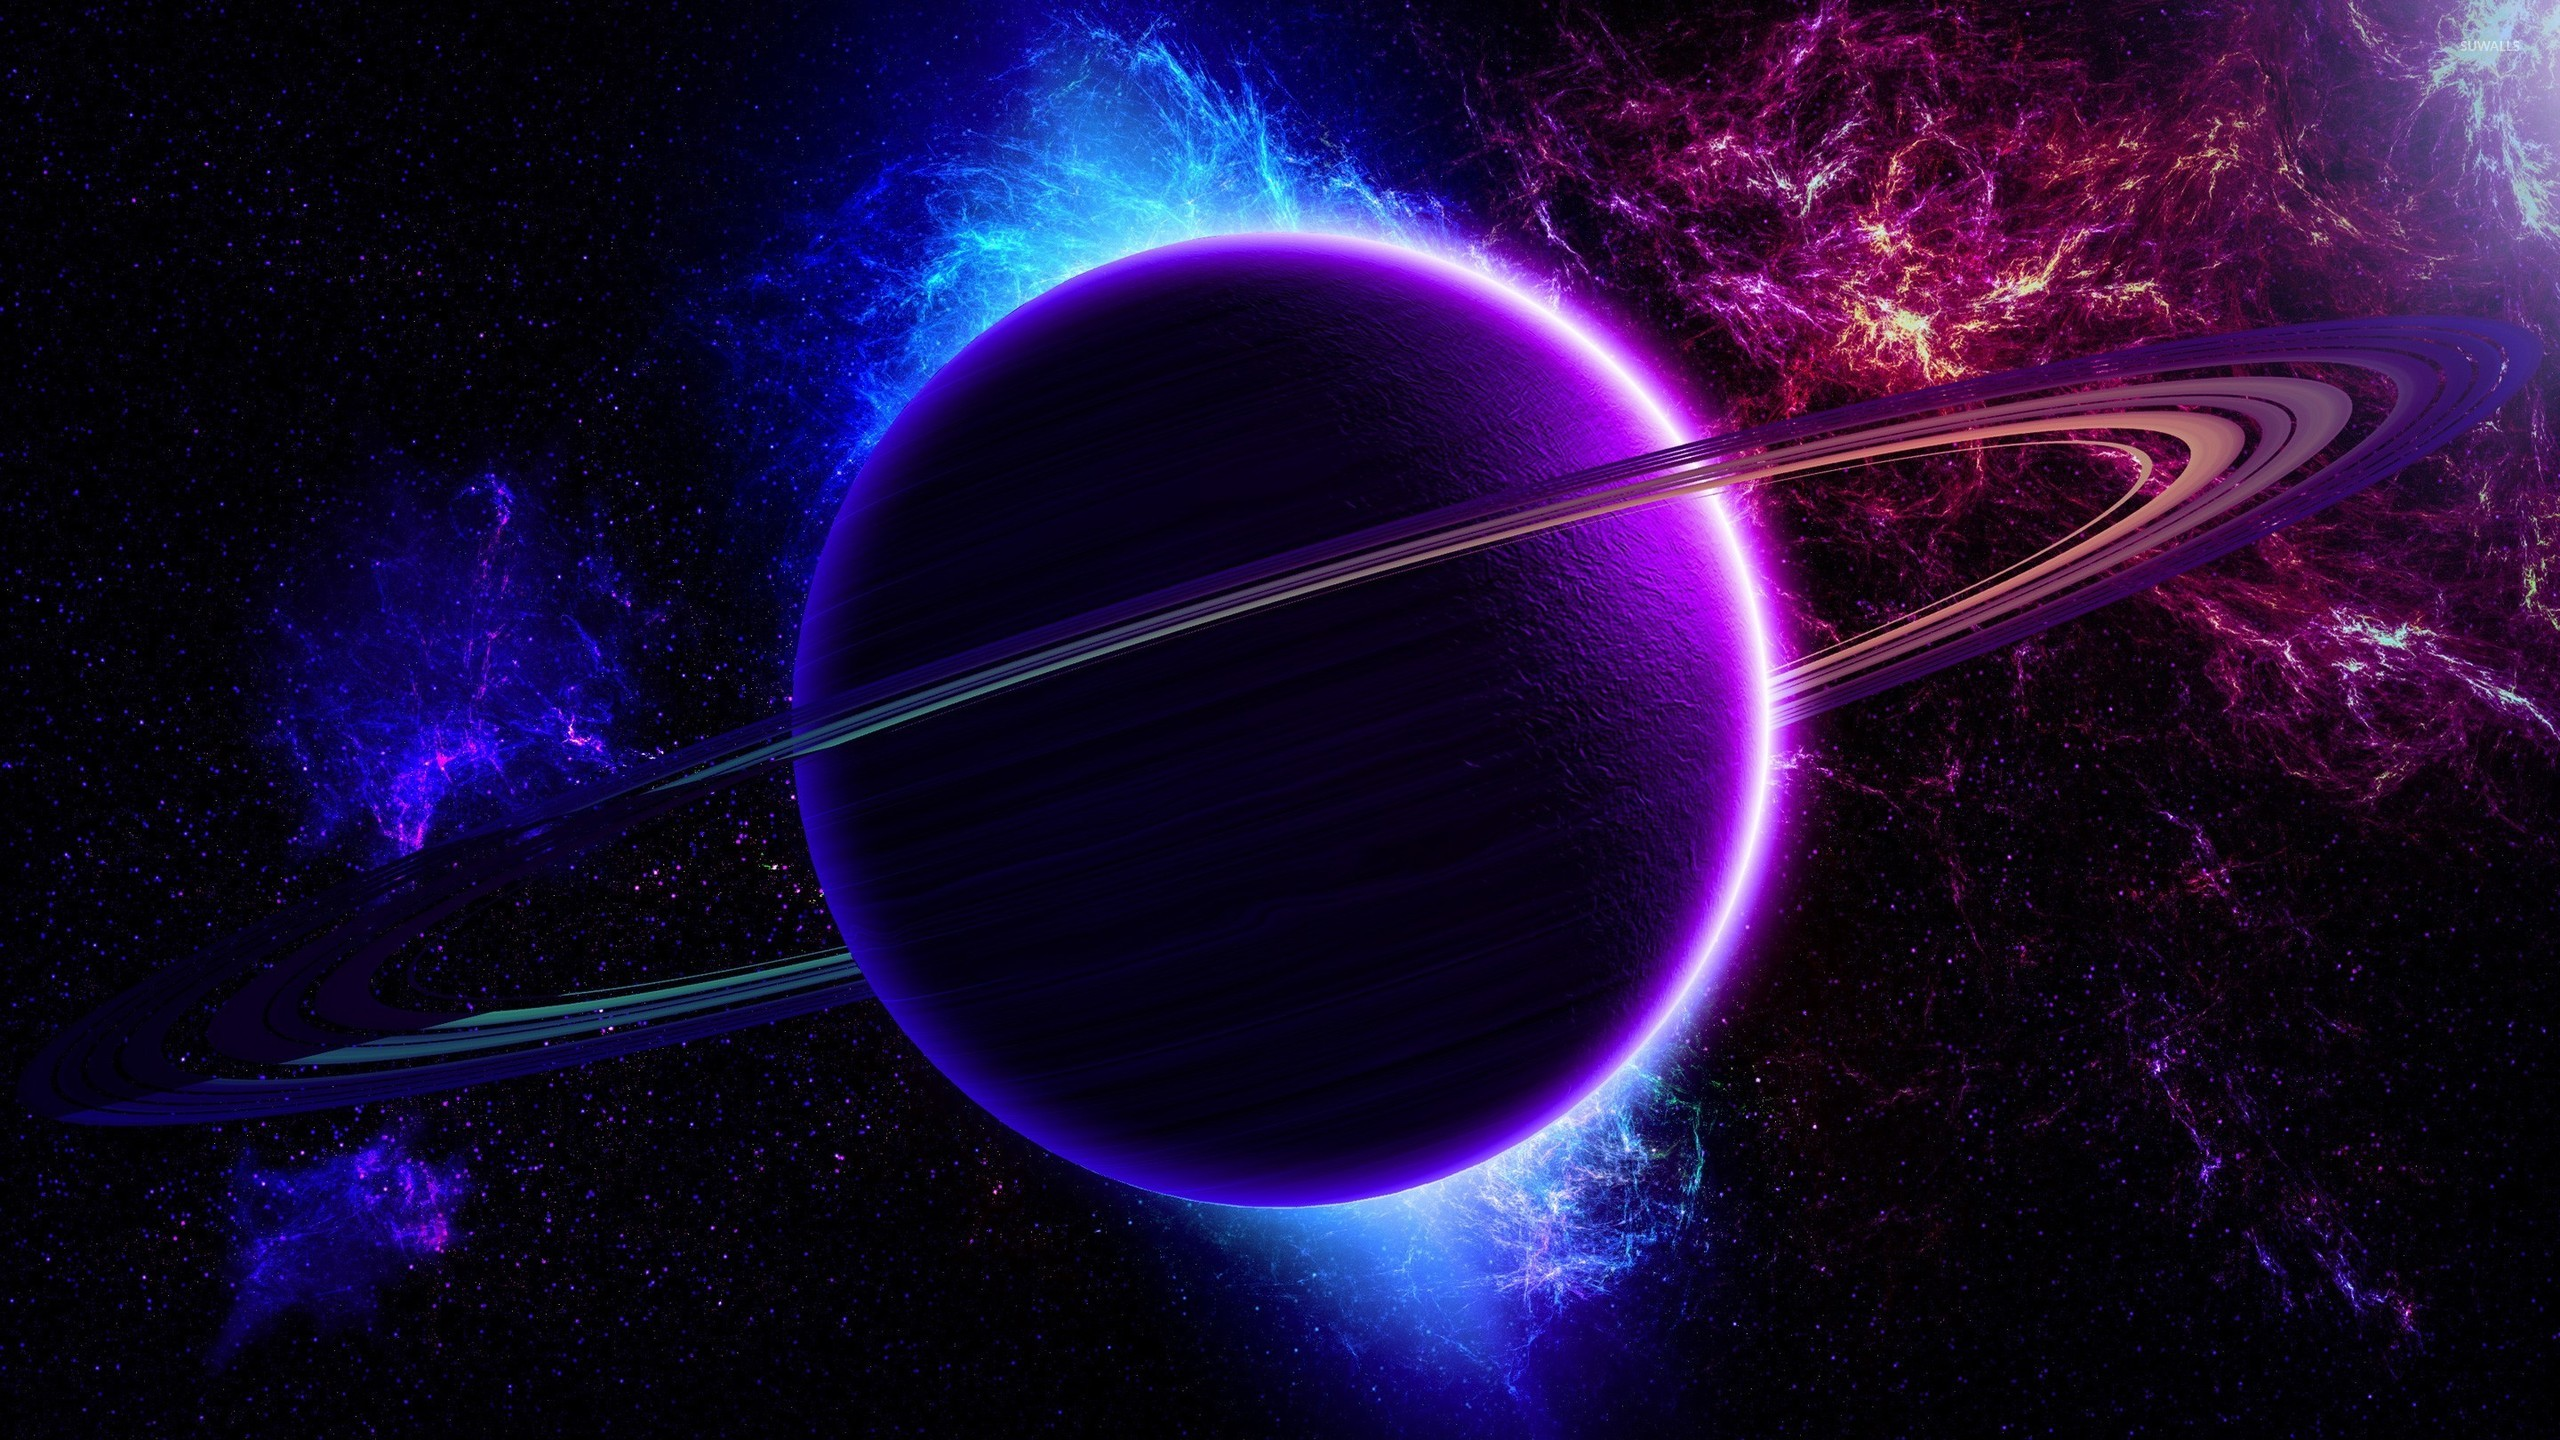 purple and blue planets -#main